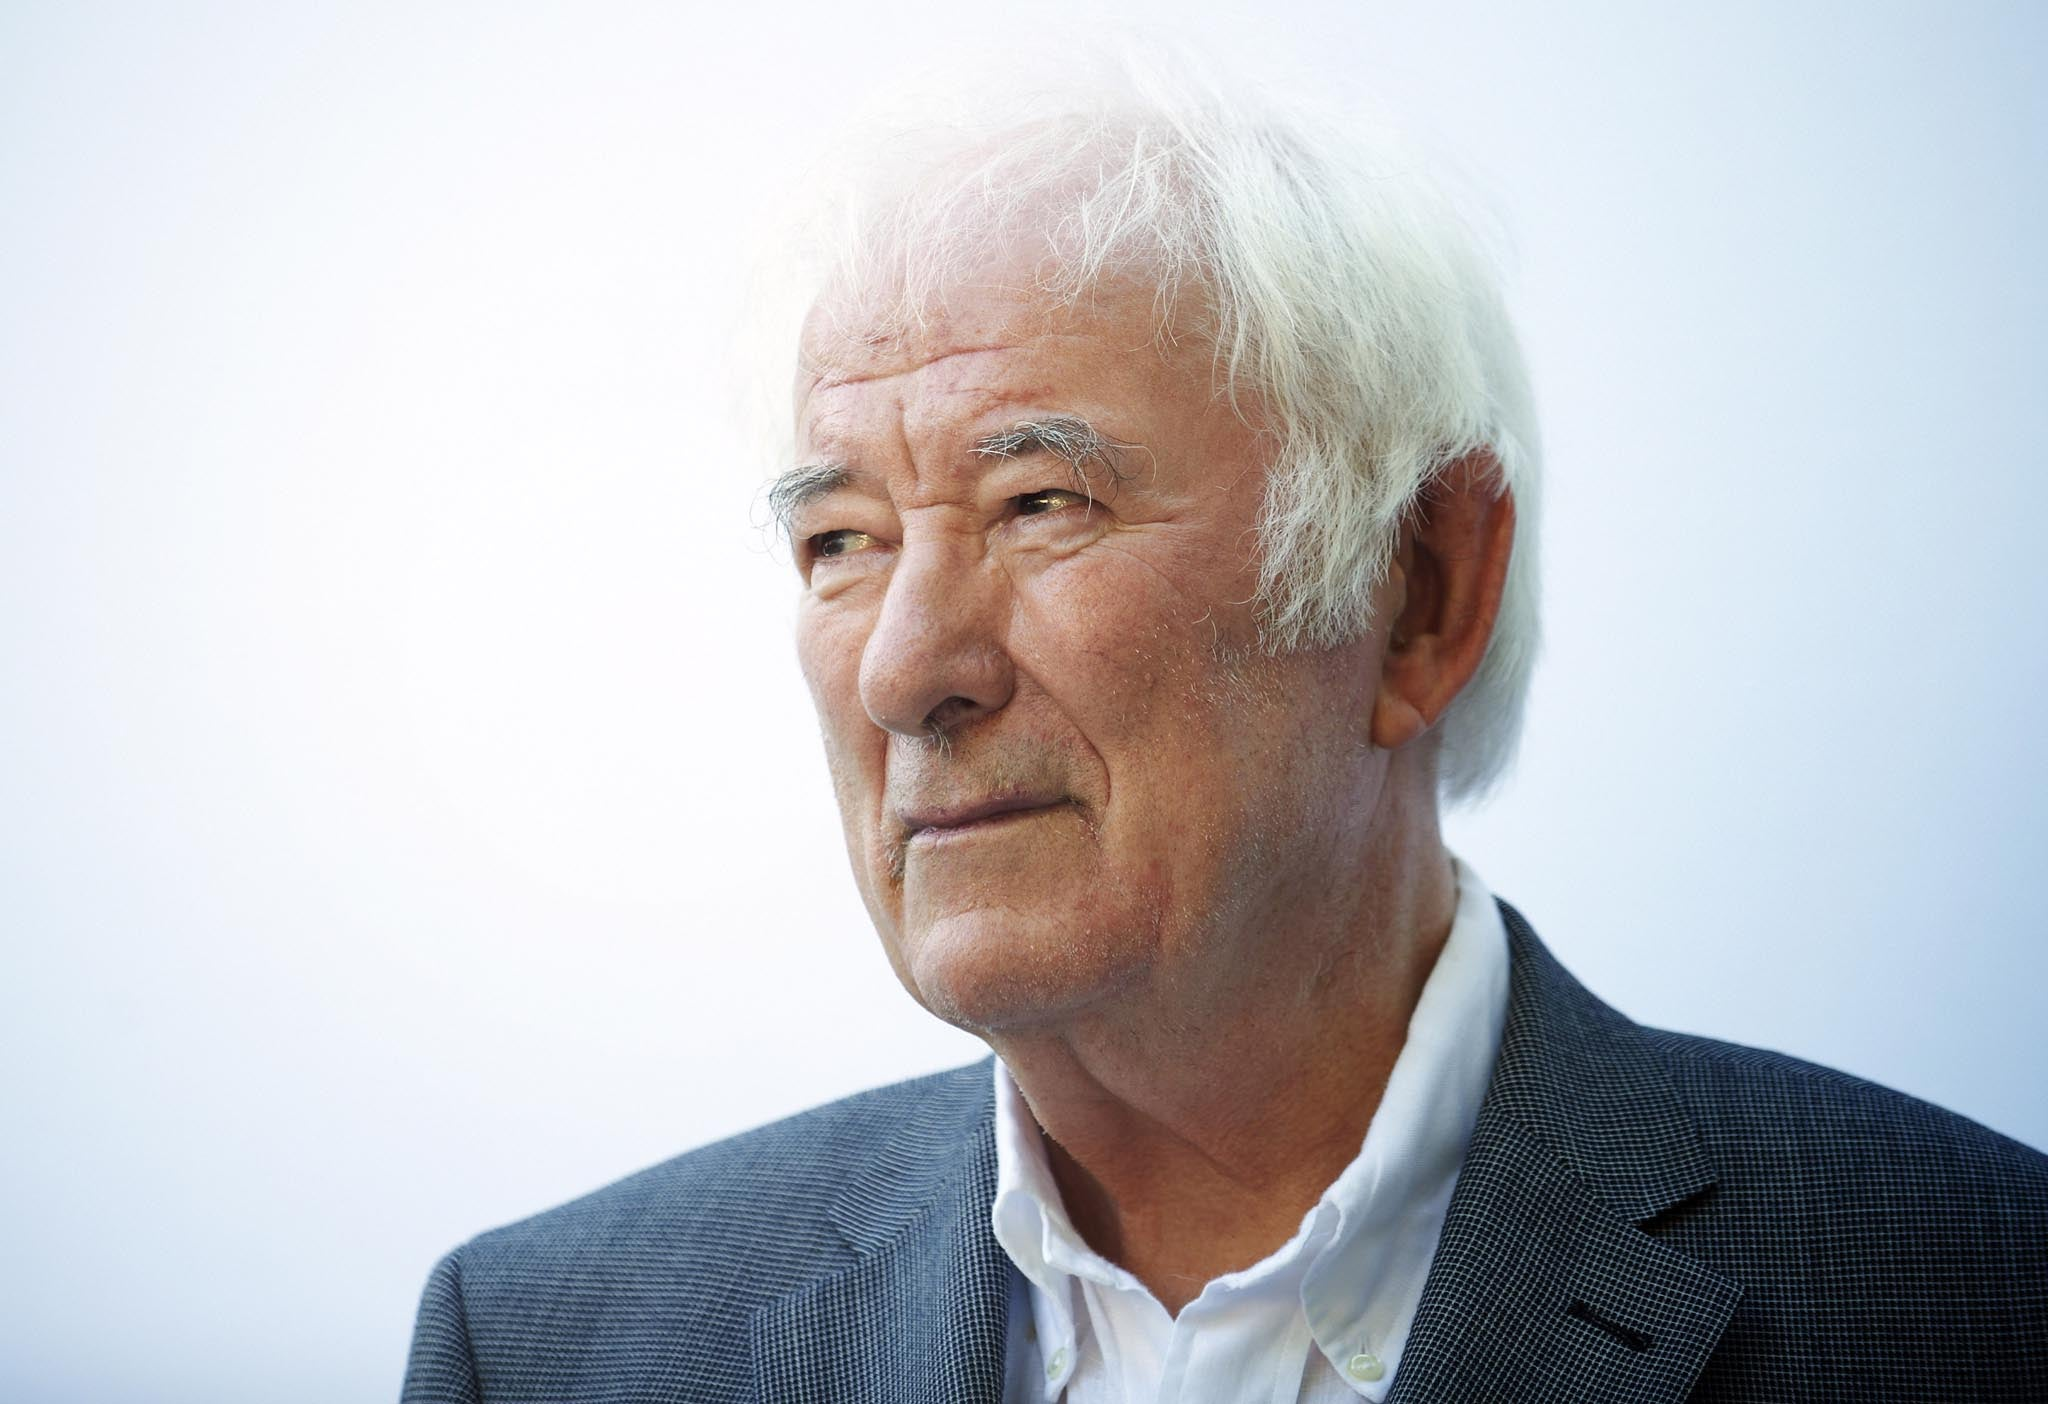 an analysis of seamus heaneys poem digging The greatest poems by seamus heaney seamus heaney (1939-2013) was one of the greatest and most popular english-language poets of the late twentieth century, and he continued to write into the current century.